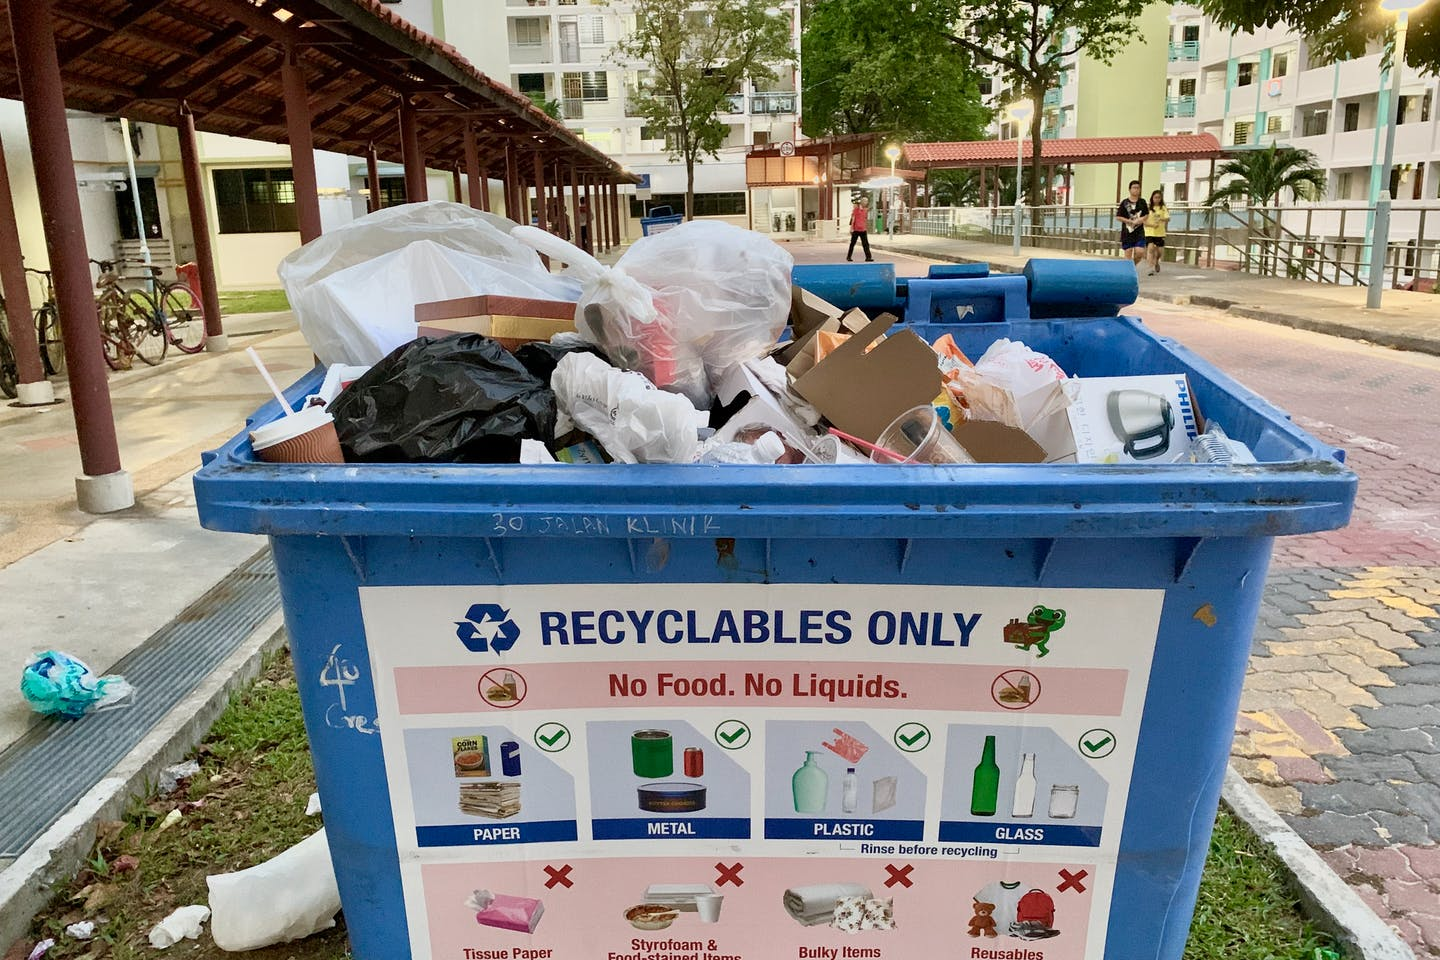 A recycling bin in Singapore